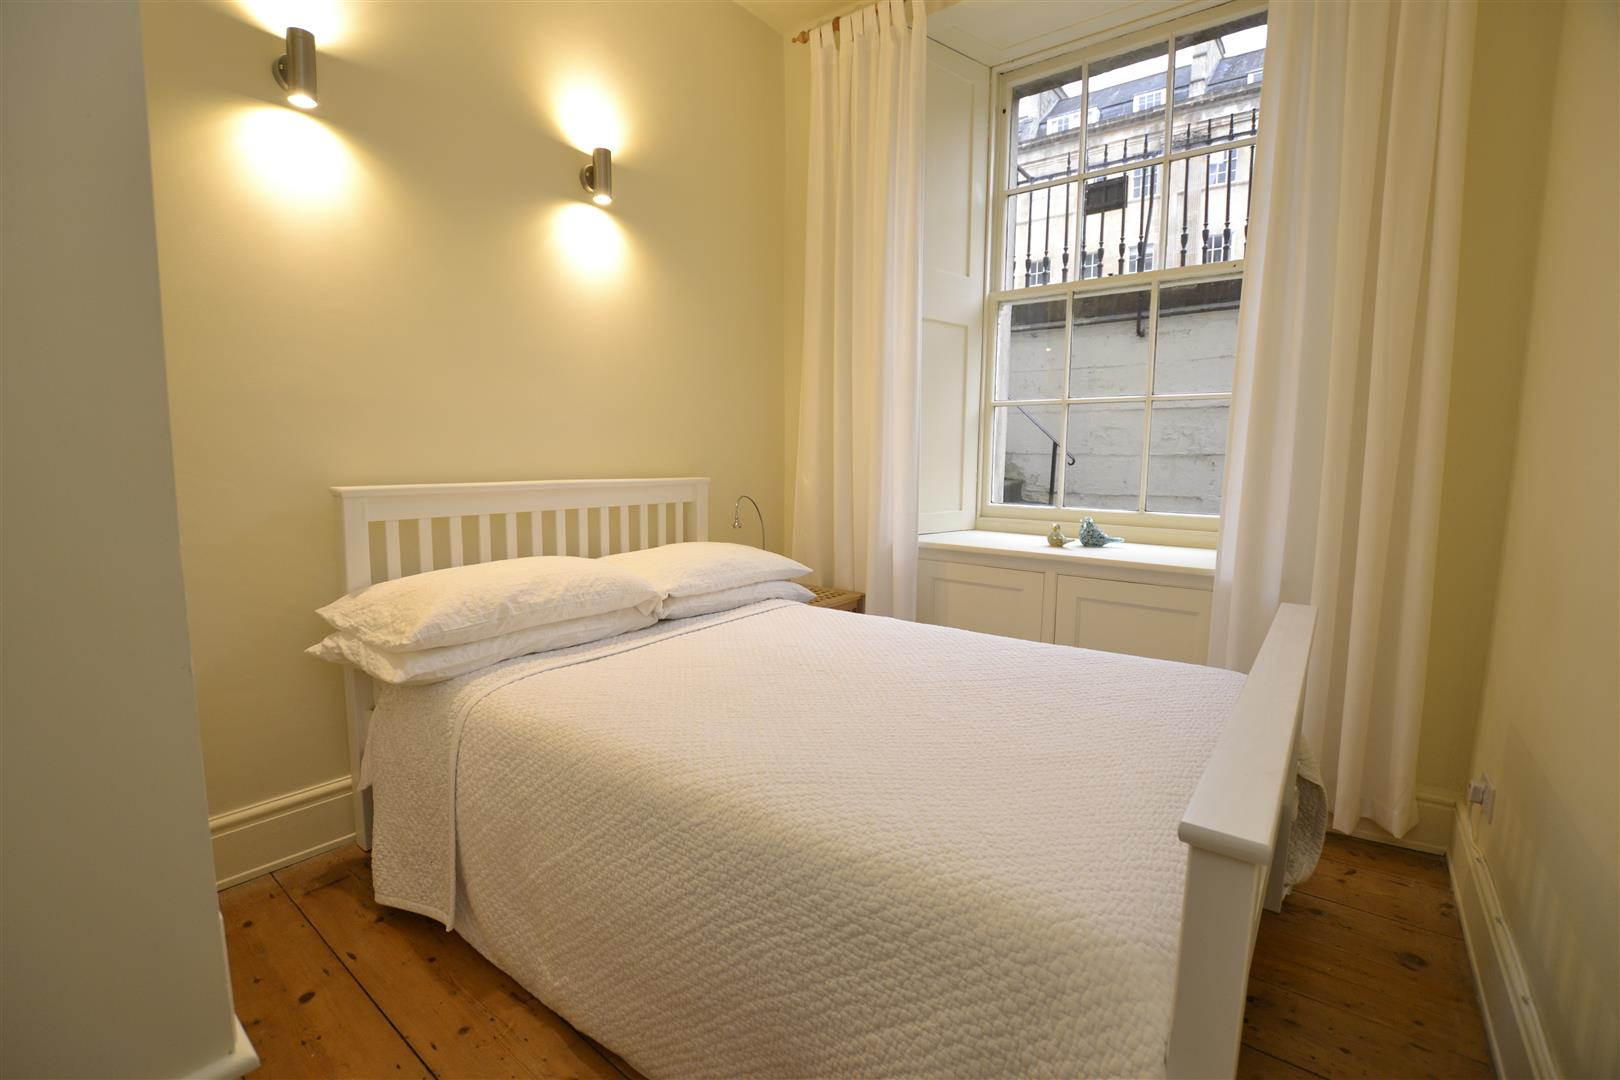 Connaught Mansions, Great Pulteney Street, Bath, BA2